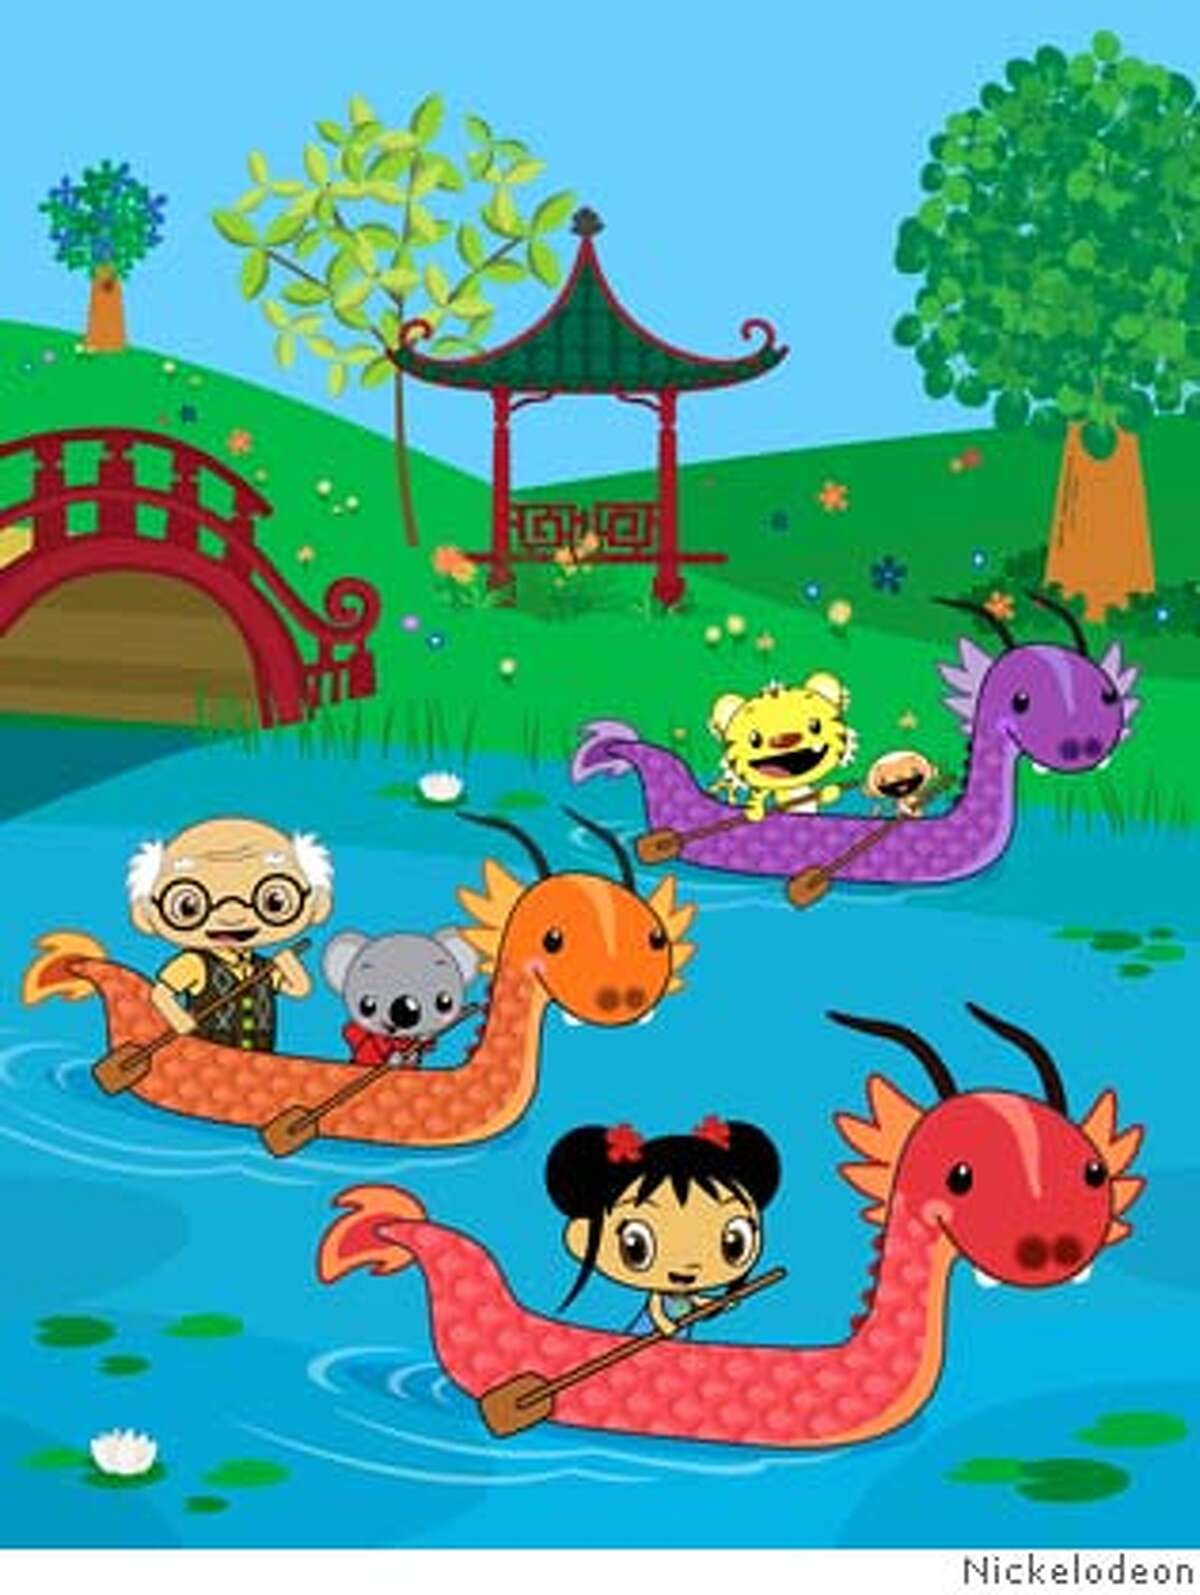 Nick Jr. Celebrates the Chinese New Year and Introduces Preschoolers to Chinese Language and Culture on Ni Hao, Kai-lan, a Groundbreaking New Animated Series Premiering Thursday, Feb. 7, at 11:00 a.m. (ET/PT). (PRNewsFoto/NICKELODEON)